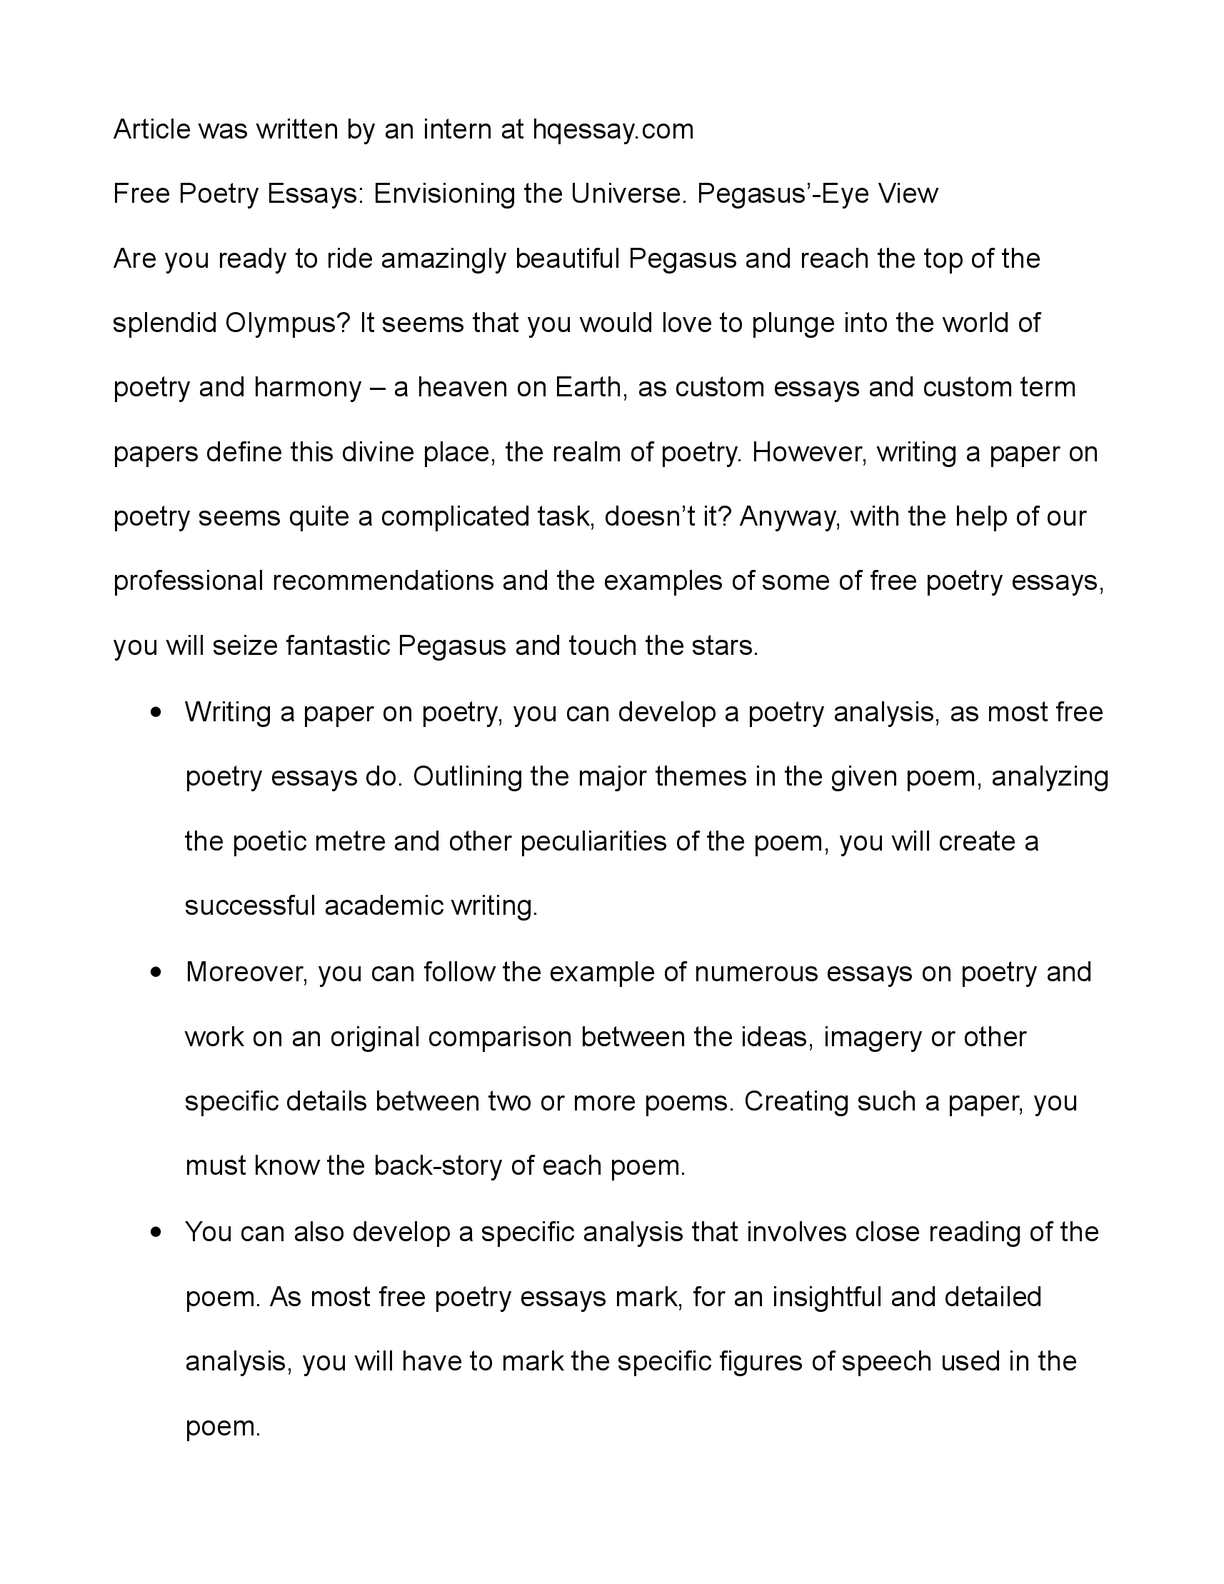 Sample Essay Thesis Calamo  Free Poetry Essays Envisioning The Universe Pegasuseye View English Model Essays also Cause And Effect Essay Papers Calamo  Free Poetry Essays Envisioning The Universe Pegasuseye  Personal Essay Examples For High School